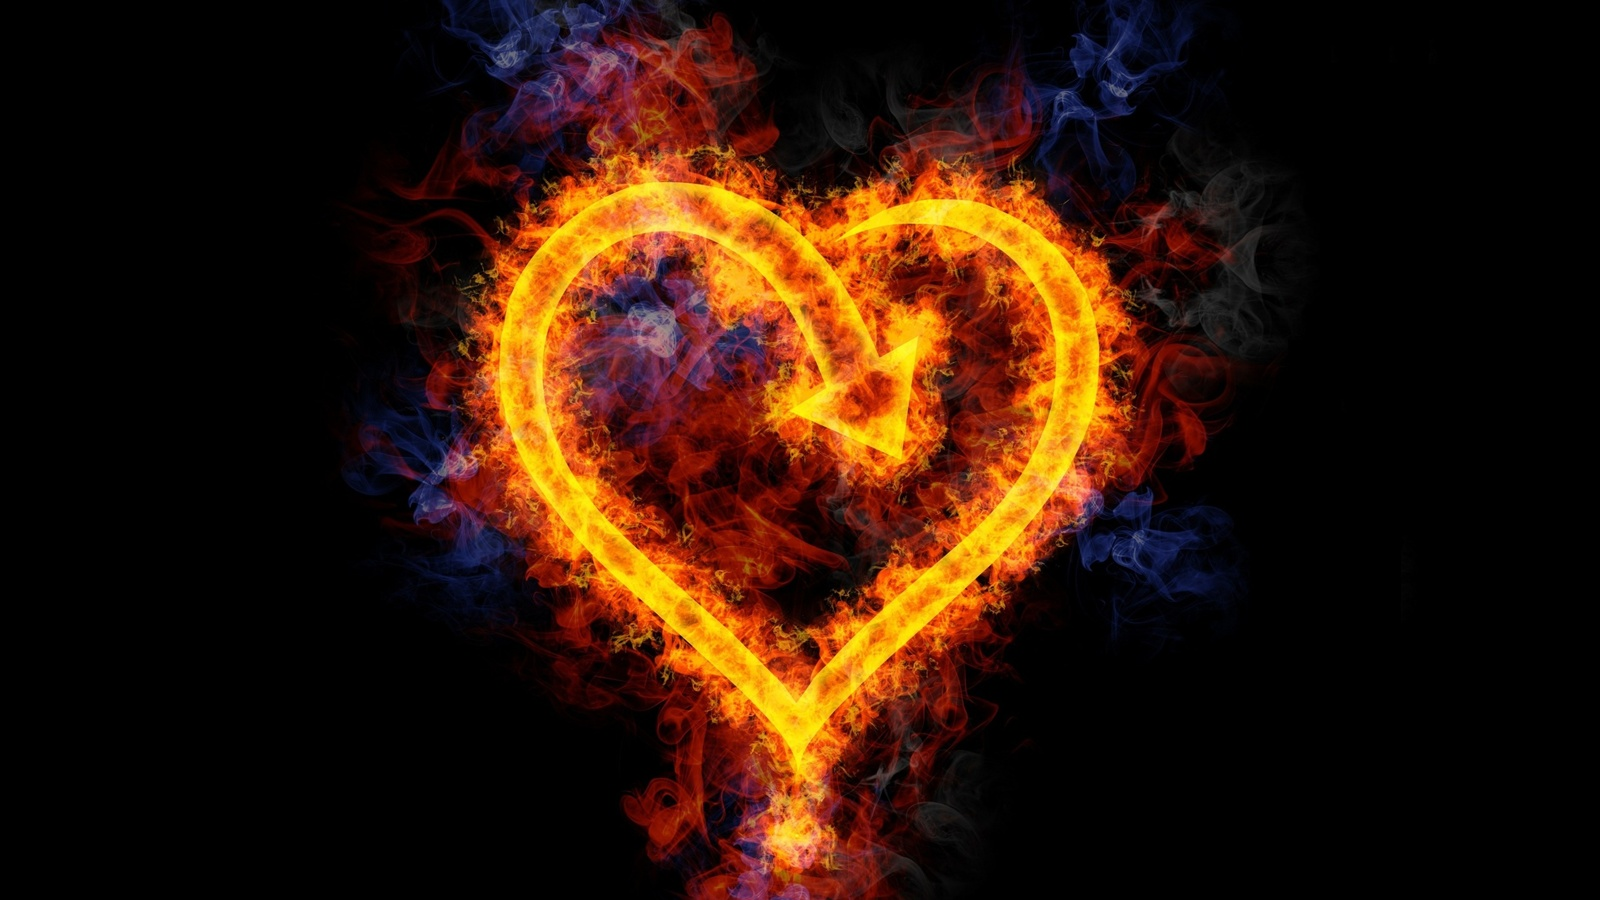 Best Iphone 7 Wallpapers Hd Wallpaper Flame Love Heart Shaped 2560x1600 Hd Picture Image